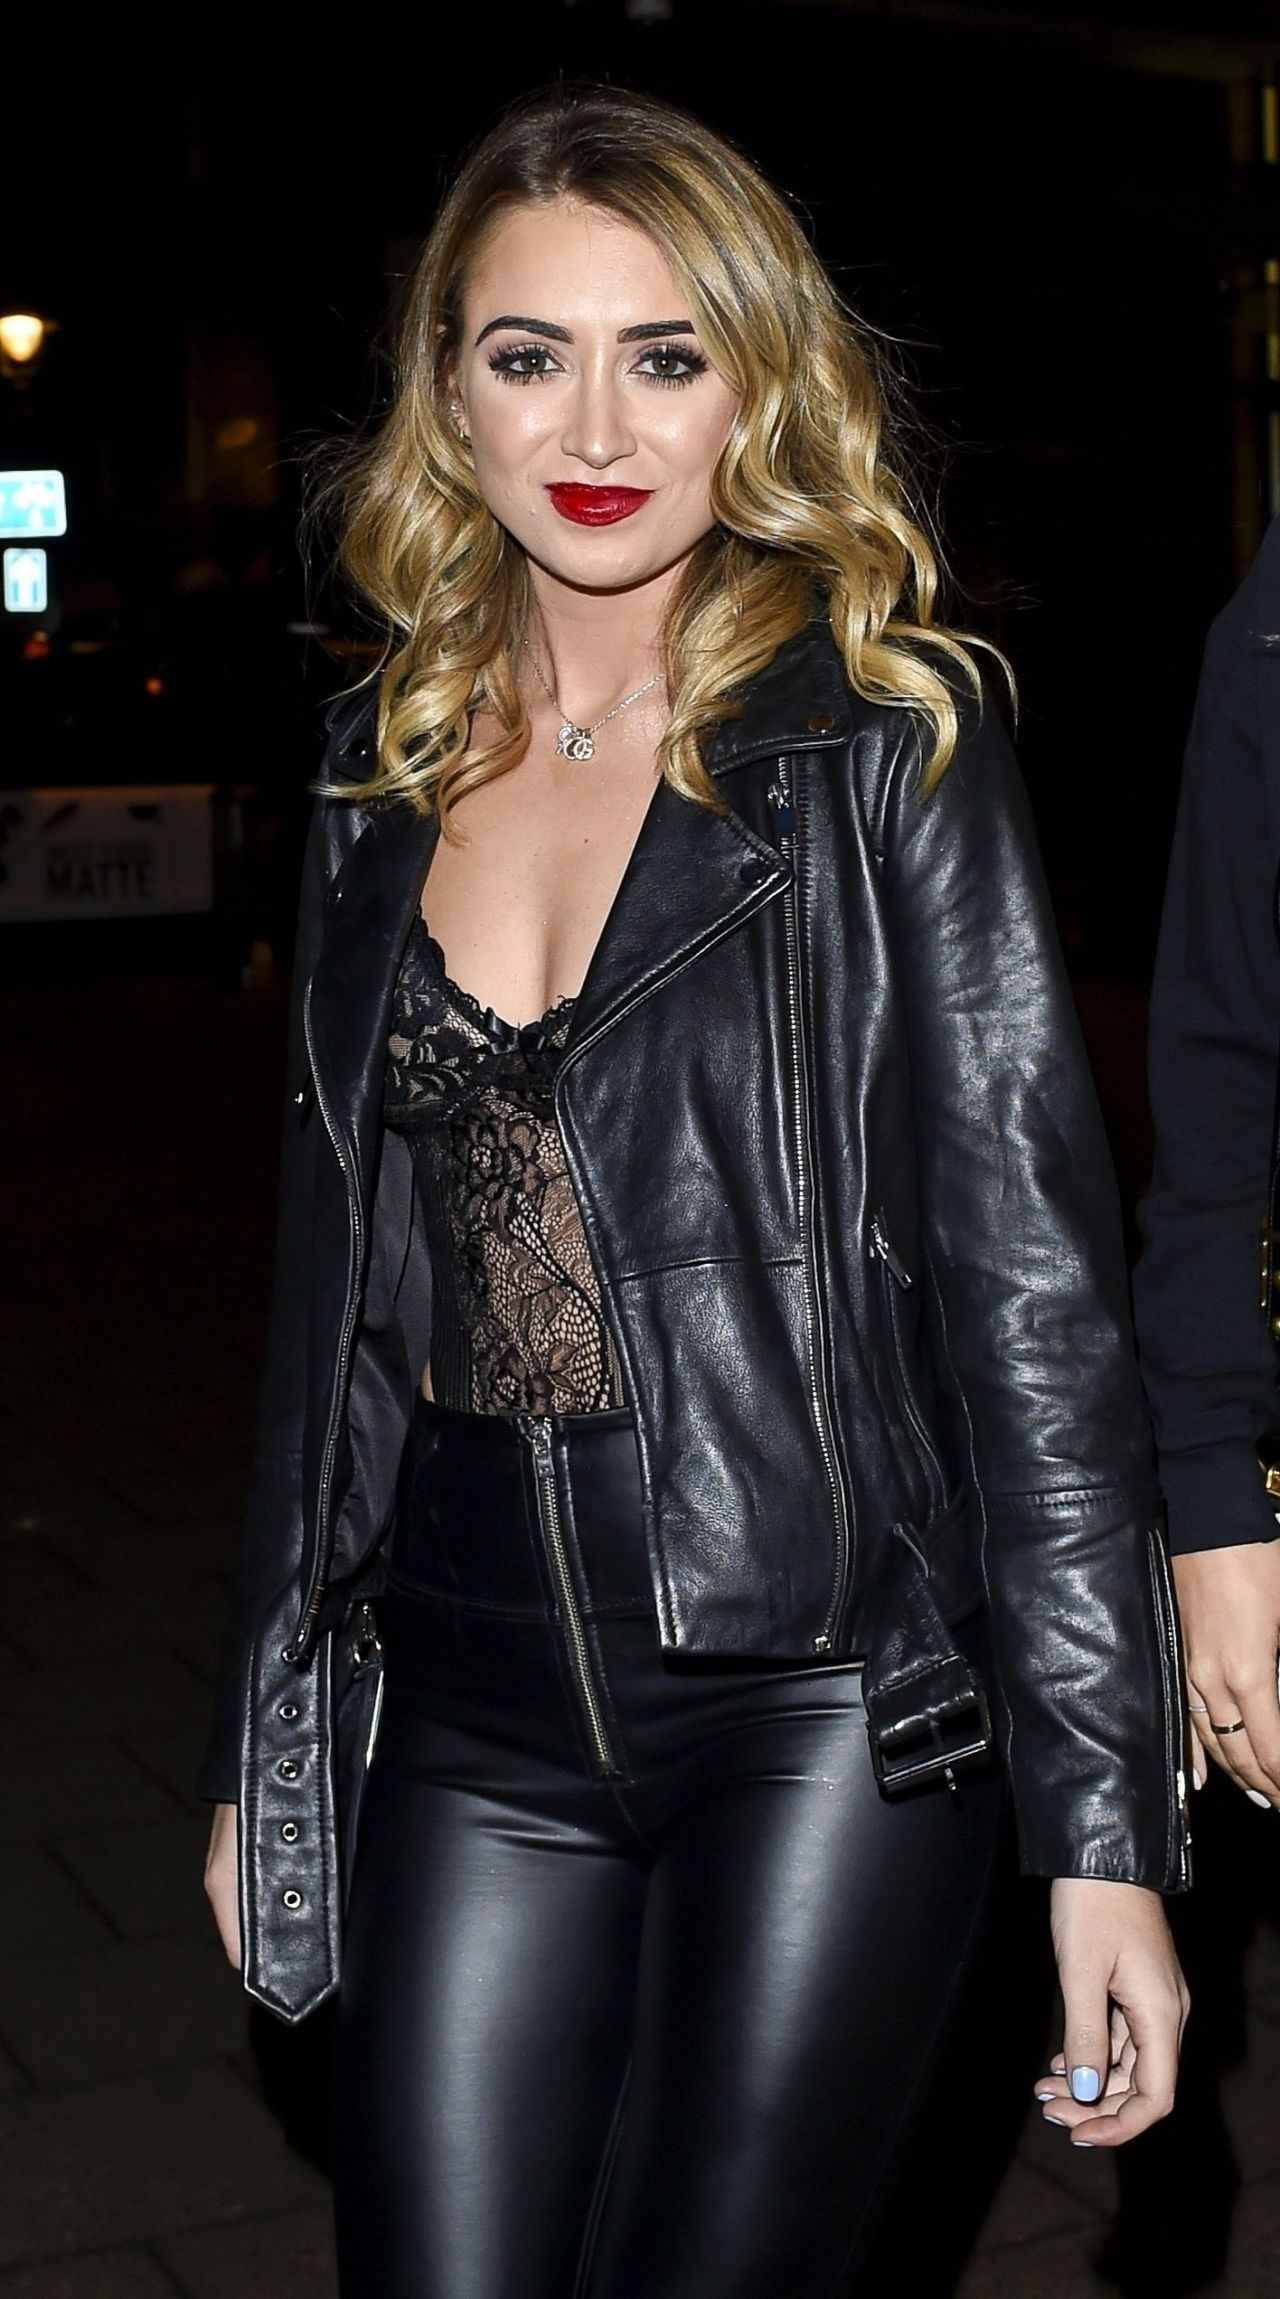 Harrison night out style 01262019 celebrity